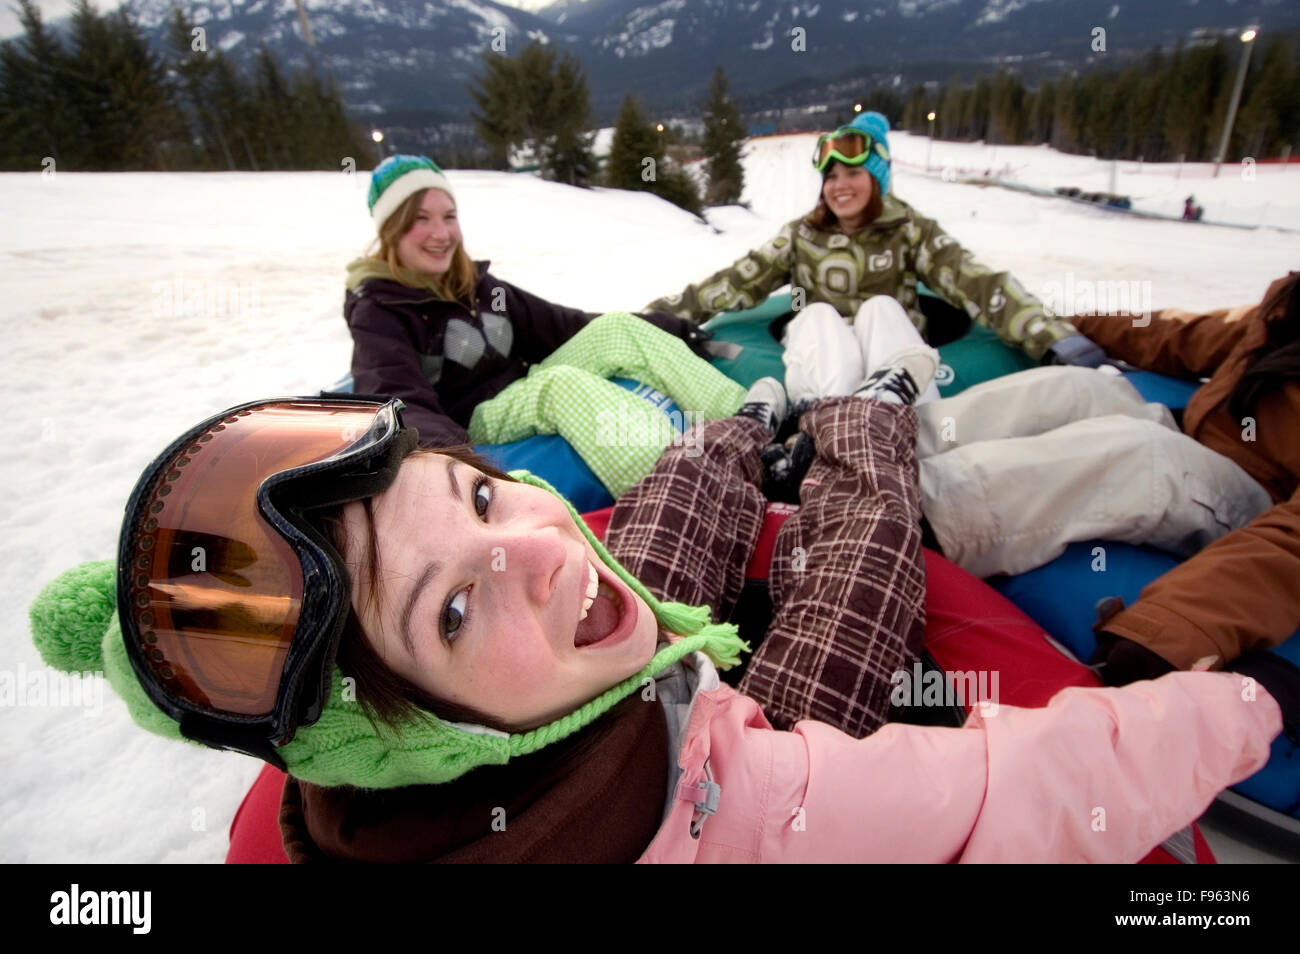 Girls laugh while playing on a giant tube at Whistler Blackcomb Tube Park, Whistler, BC Canada Stock Photo